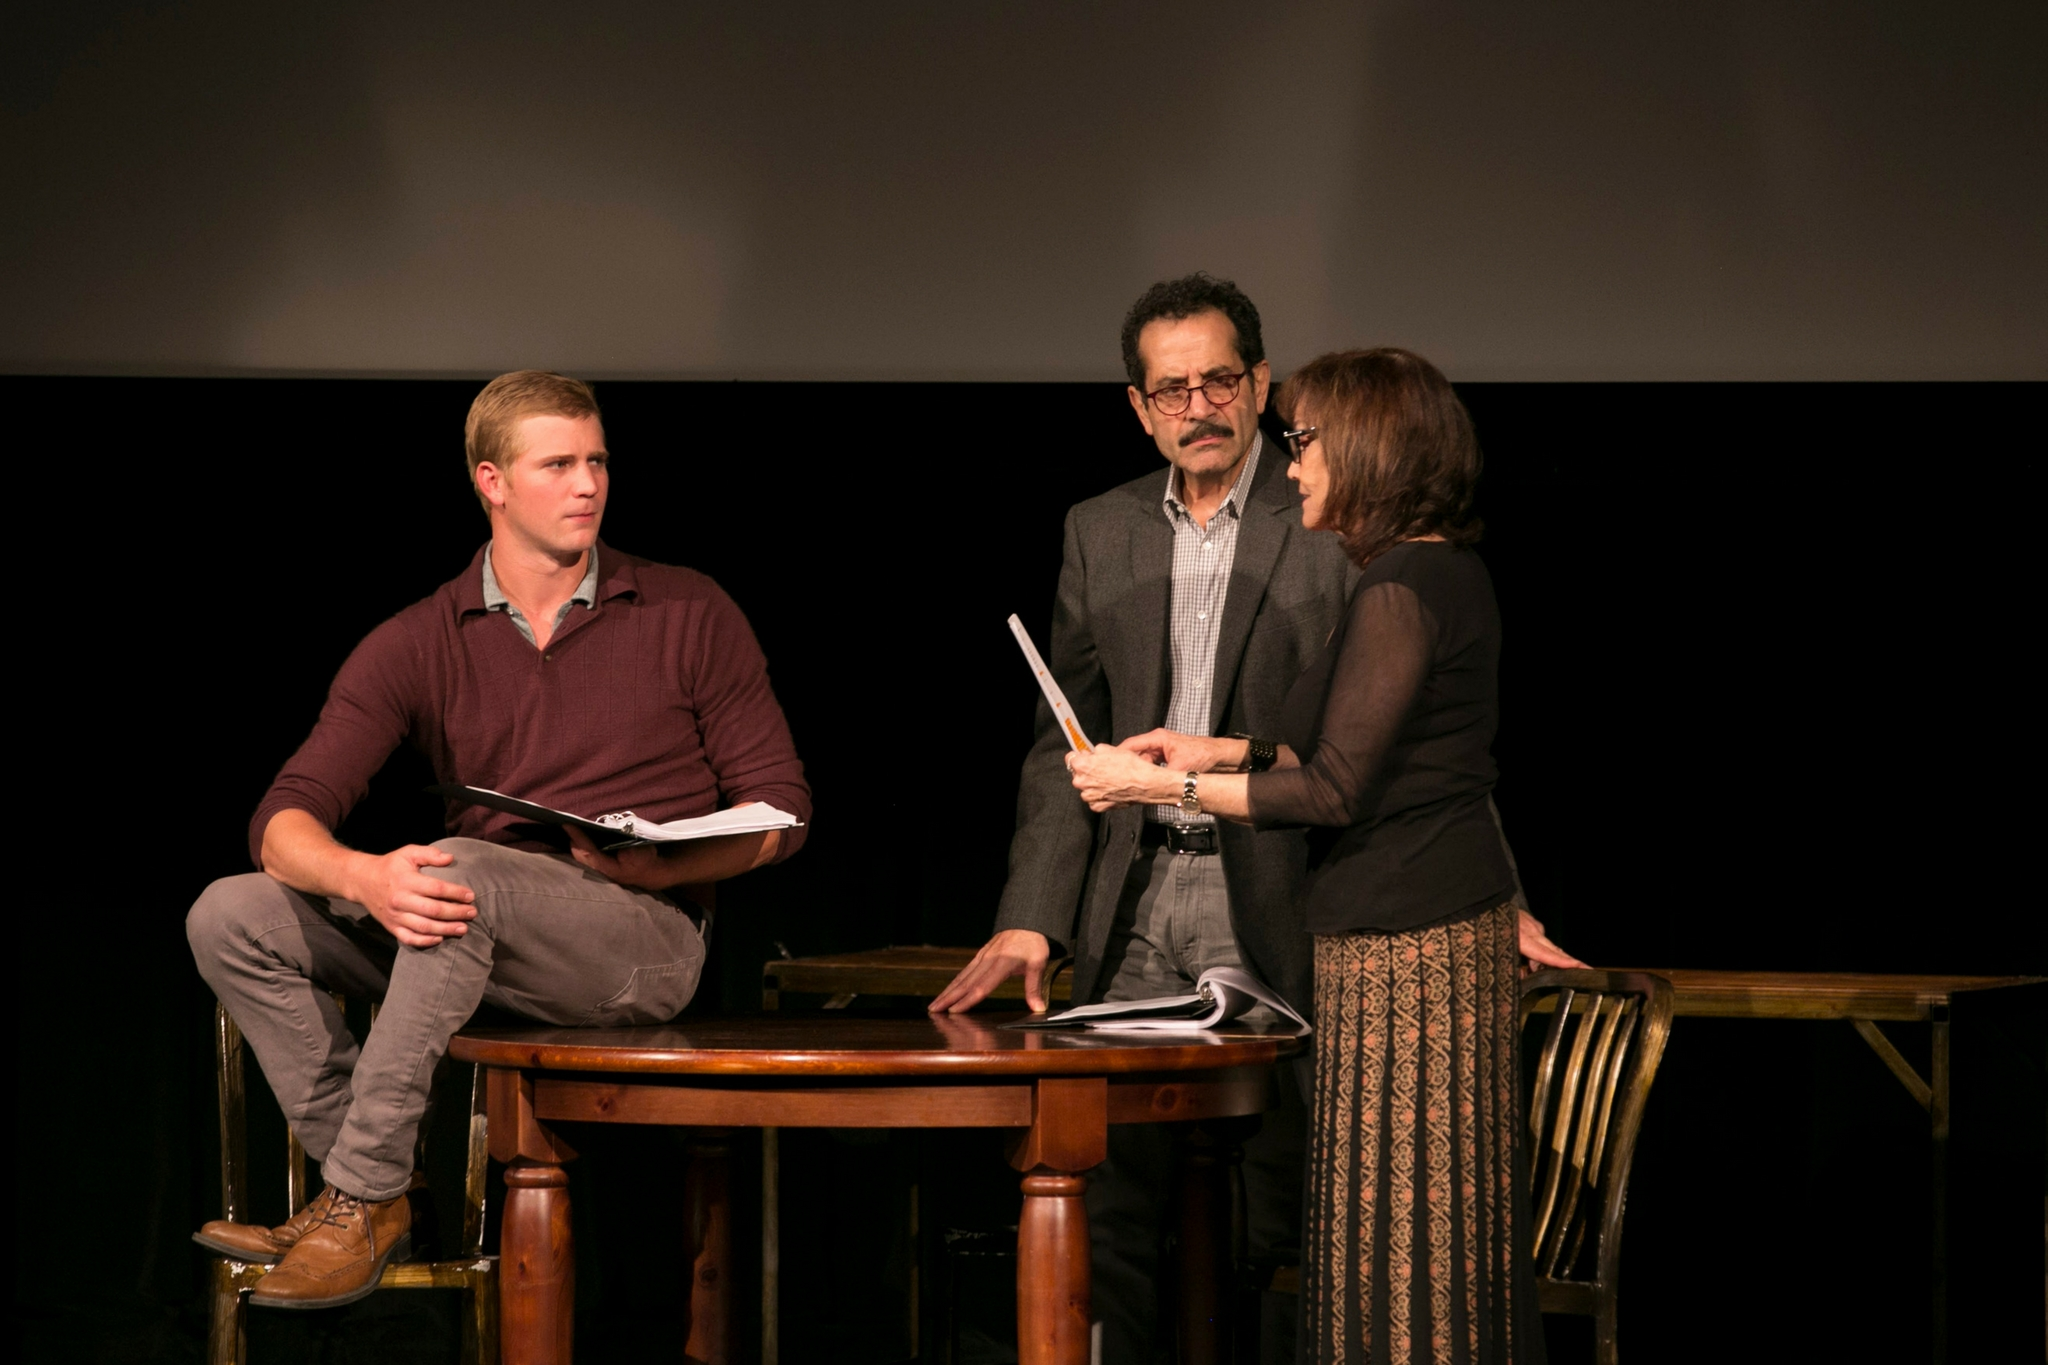 Nash Hightower (Younger Worker), Tony Shalhoub (Older Worker), and Brooke Adams (Woman), Theatre in the Rough, 2017-Photo by Evgenia Eliseeva